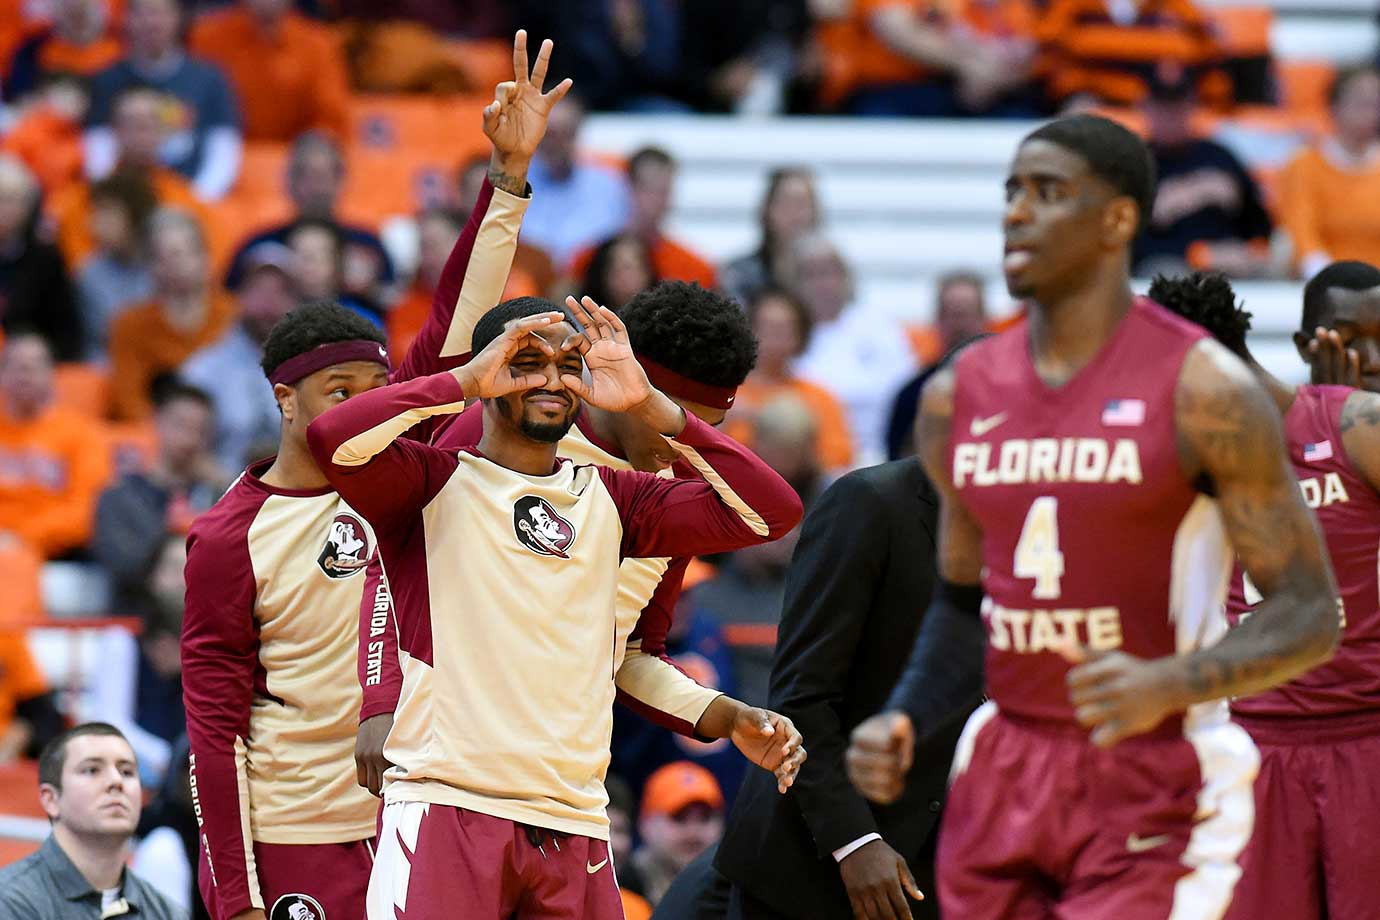 Florida State Seminoles players react from the bench to a made basket against the Syracuse Orange.